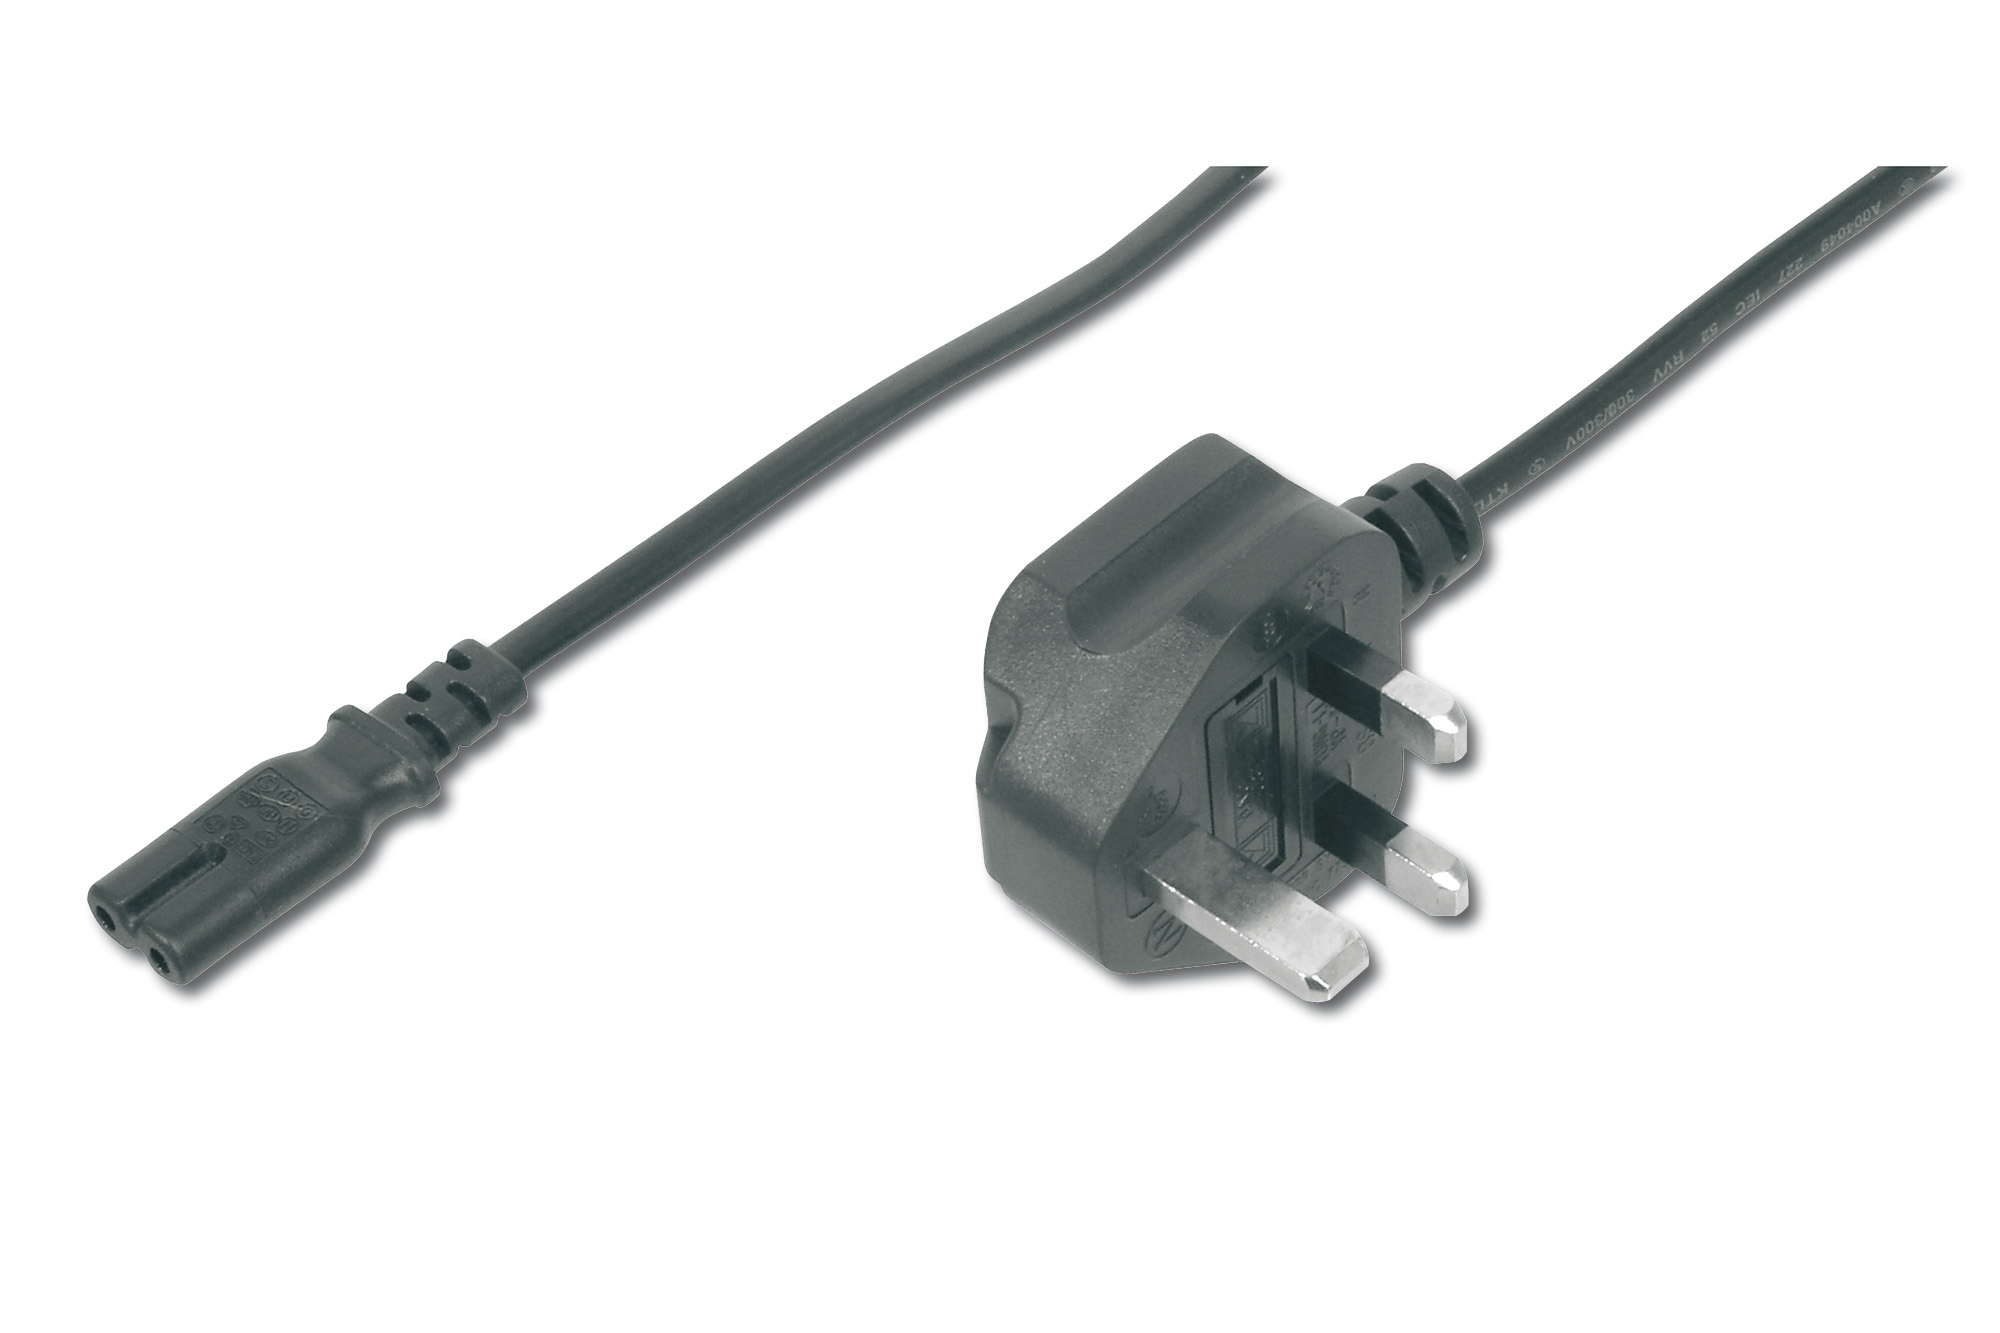 Assmann - Amazon                 Mains Cable Uk Plug 90 Angledc7     M/f 1.8m  H05vvh2-f2g 0.75qmm       Ak-440116-018-s